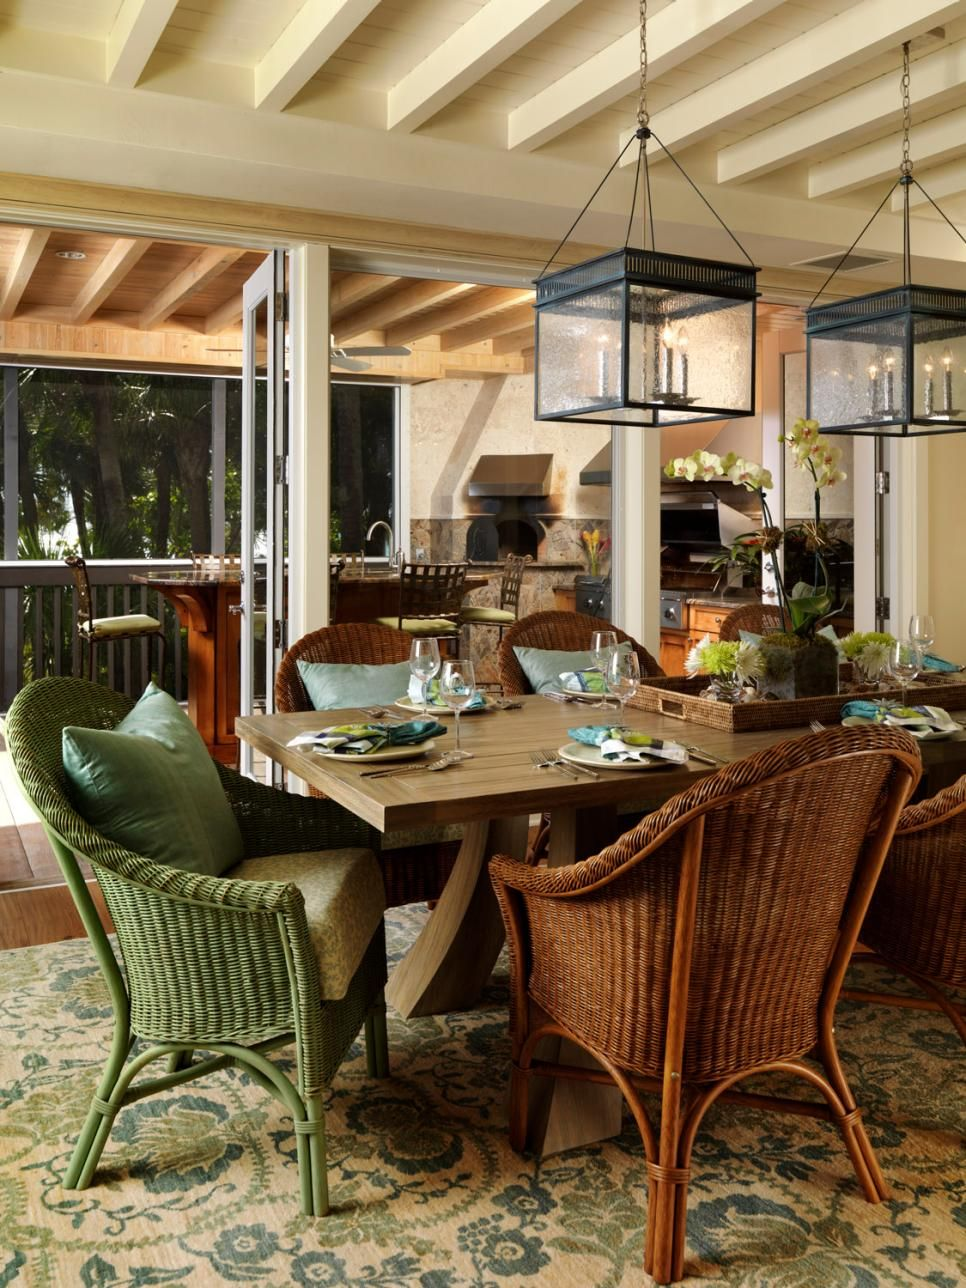 Wonderful Brown And Green Wicker Chairs Surround A Chunky Cottage Table For A Cozy, Comfortable  Dining